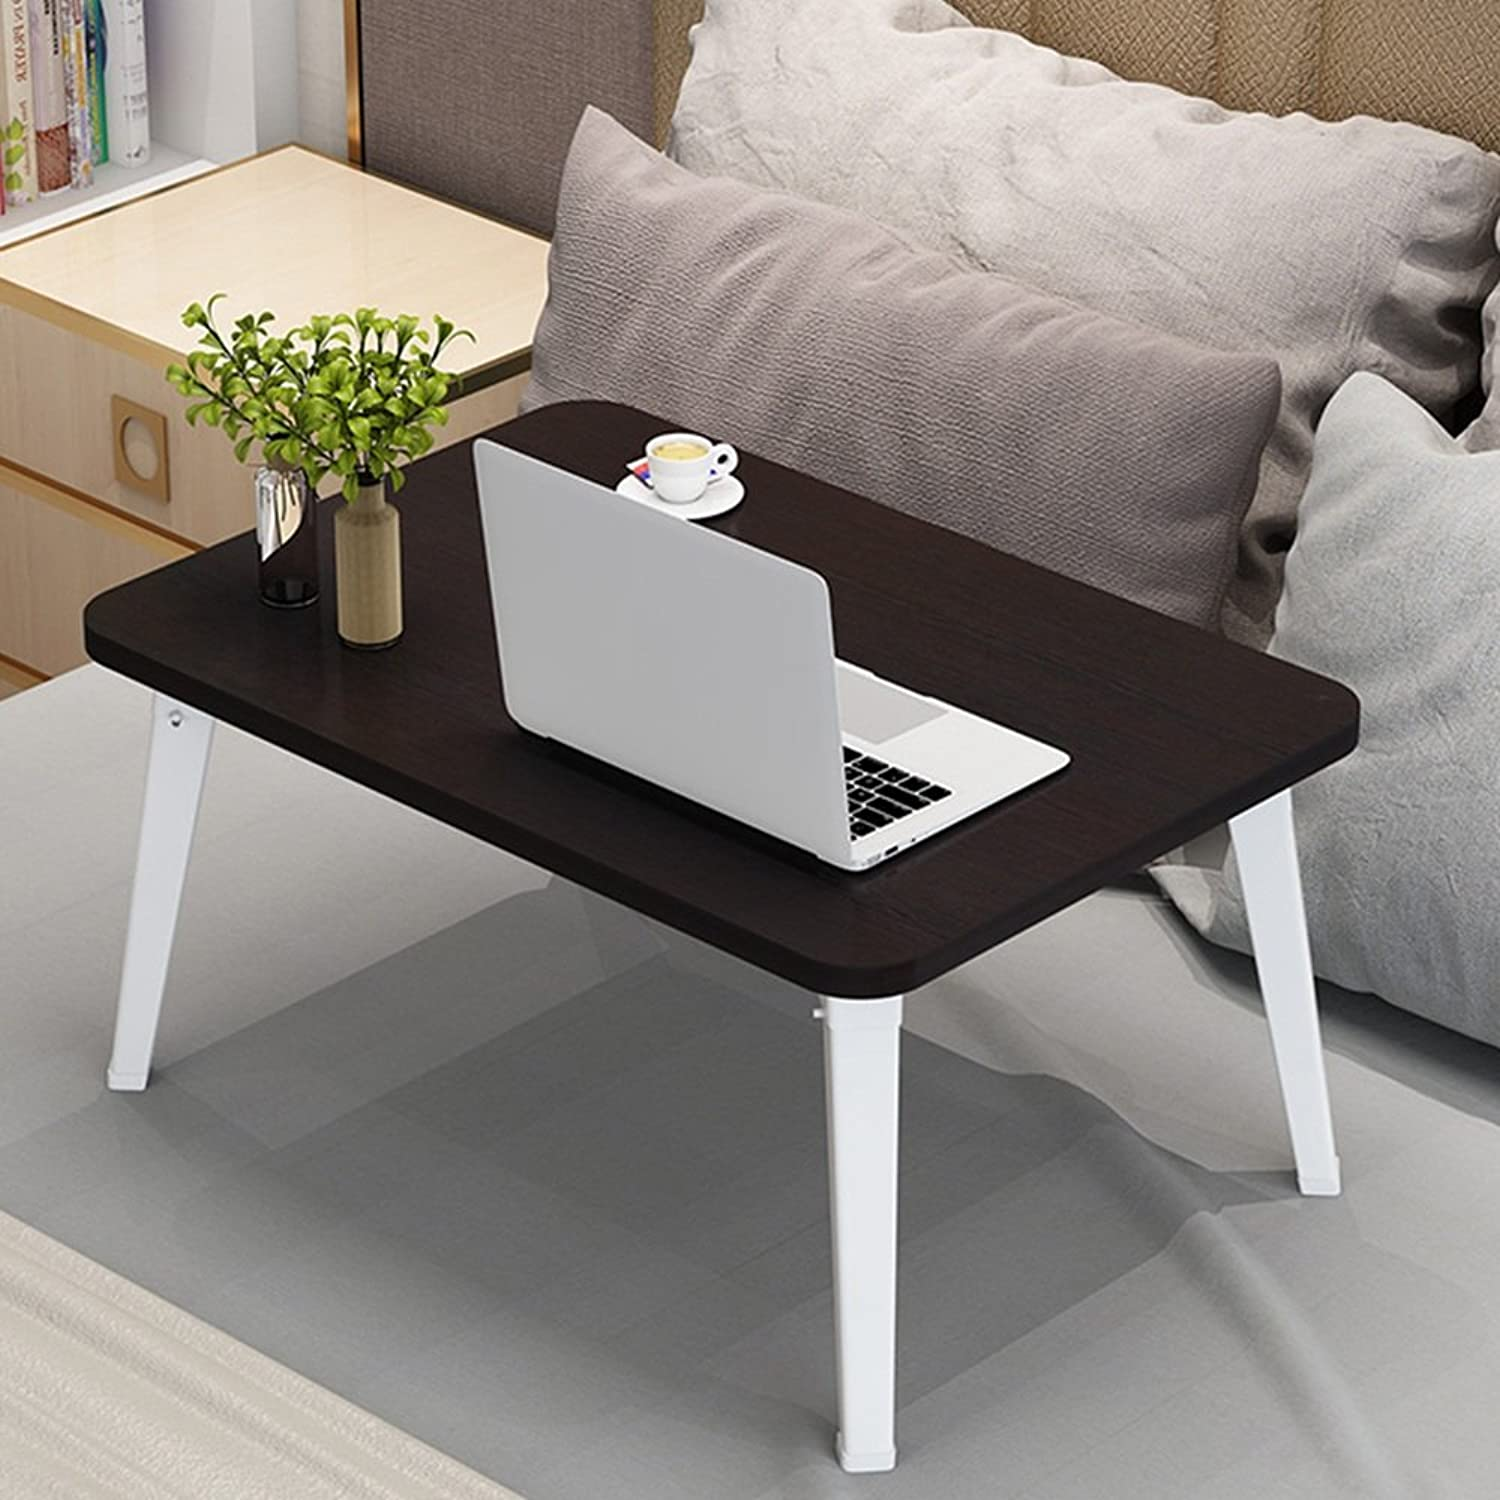 ZZ Folding Table Folding Table Small Computer Table Portable Table Book Desk Home Multi-Function Table Multi-color Optional 69  45 cm (color   E)